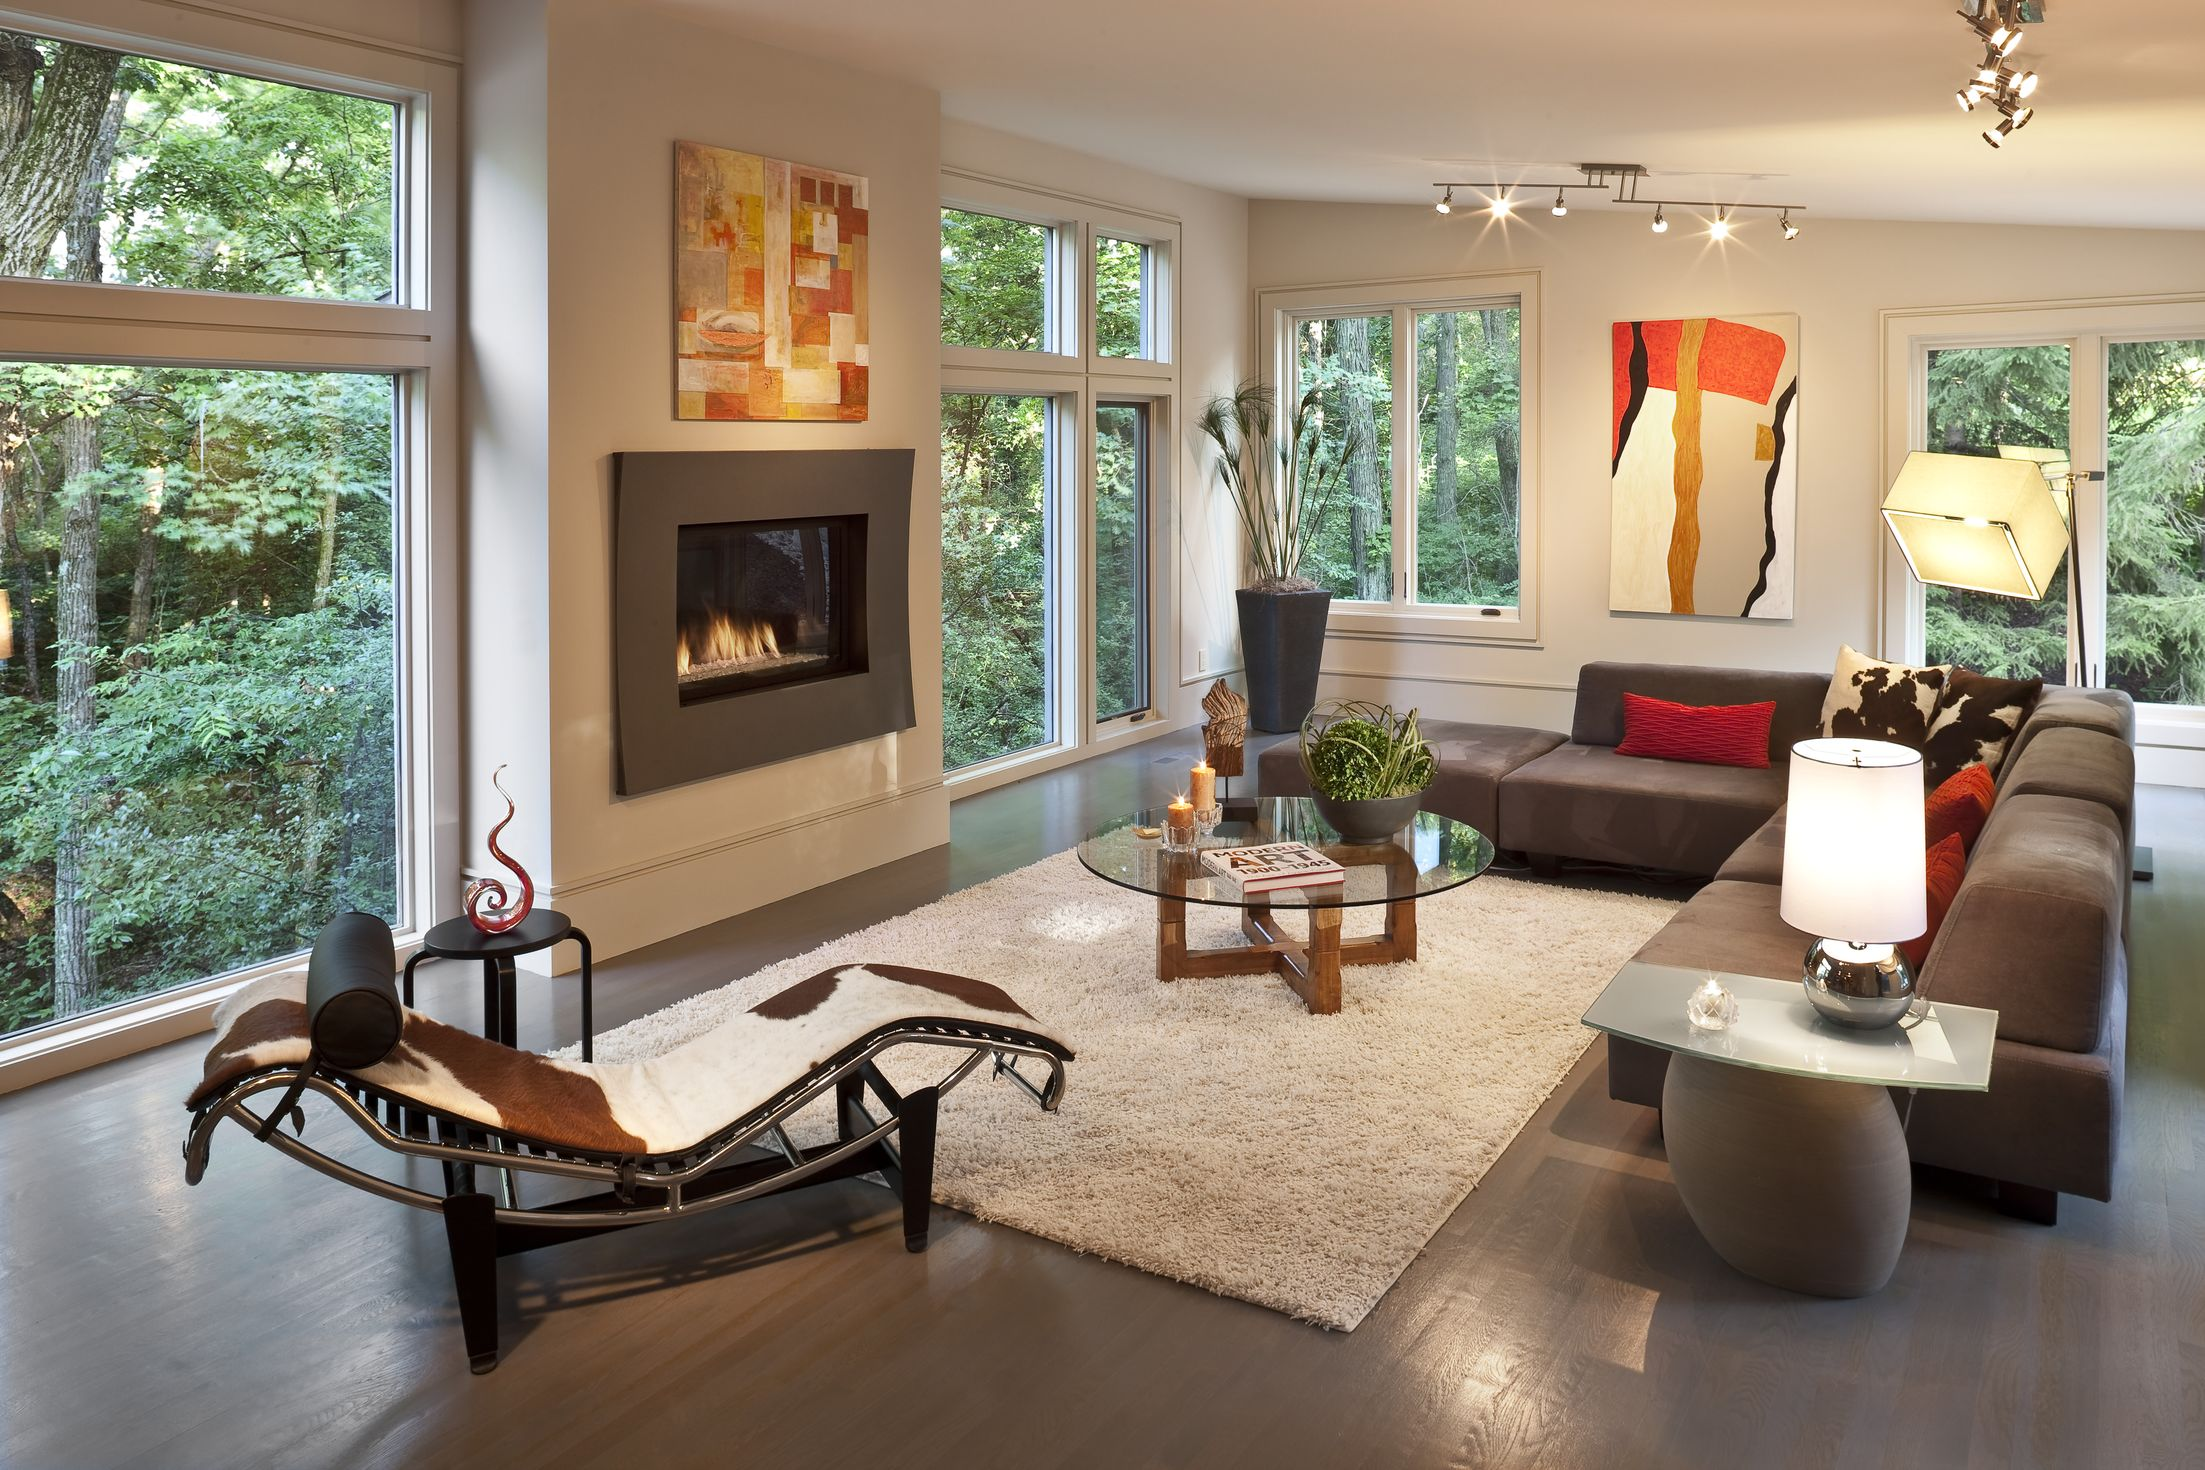 Living Room With Fireplace And Helves